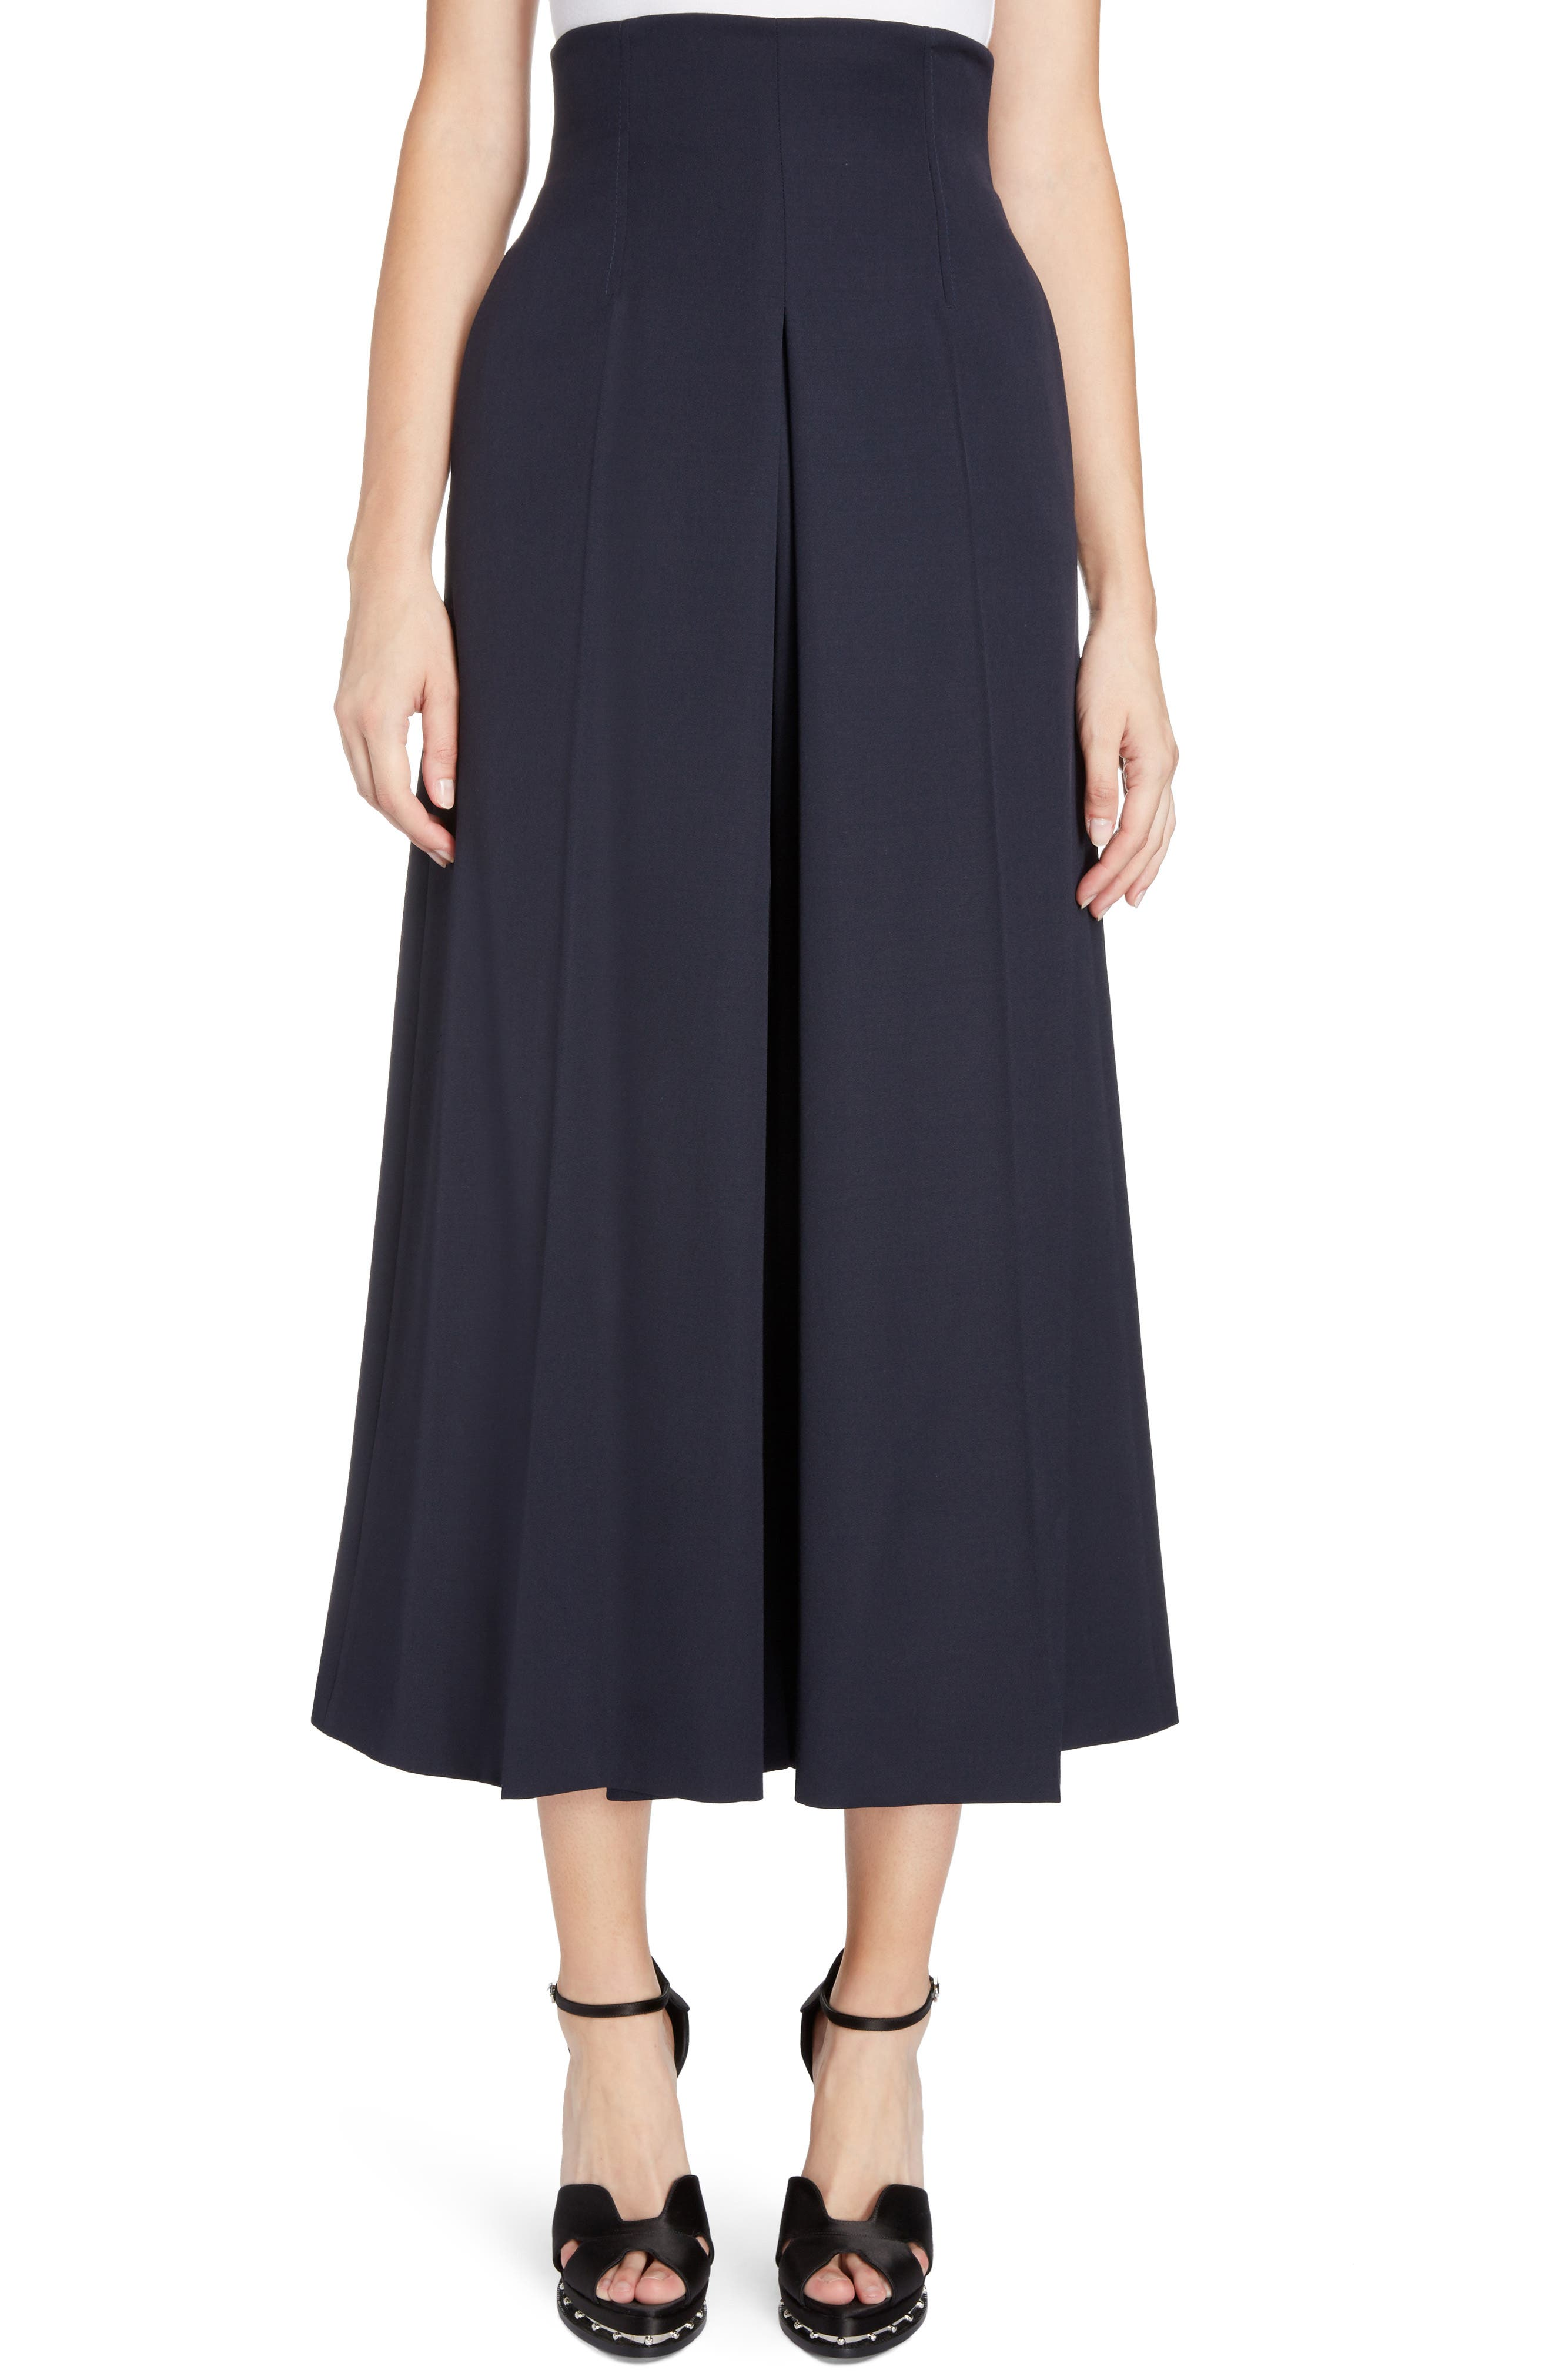 Alternate Image 1 Selected - Alexander McQueen Wool Culottes